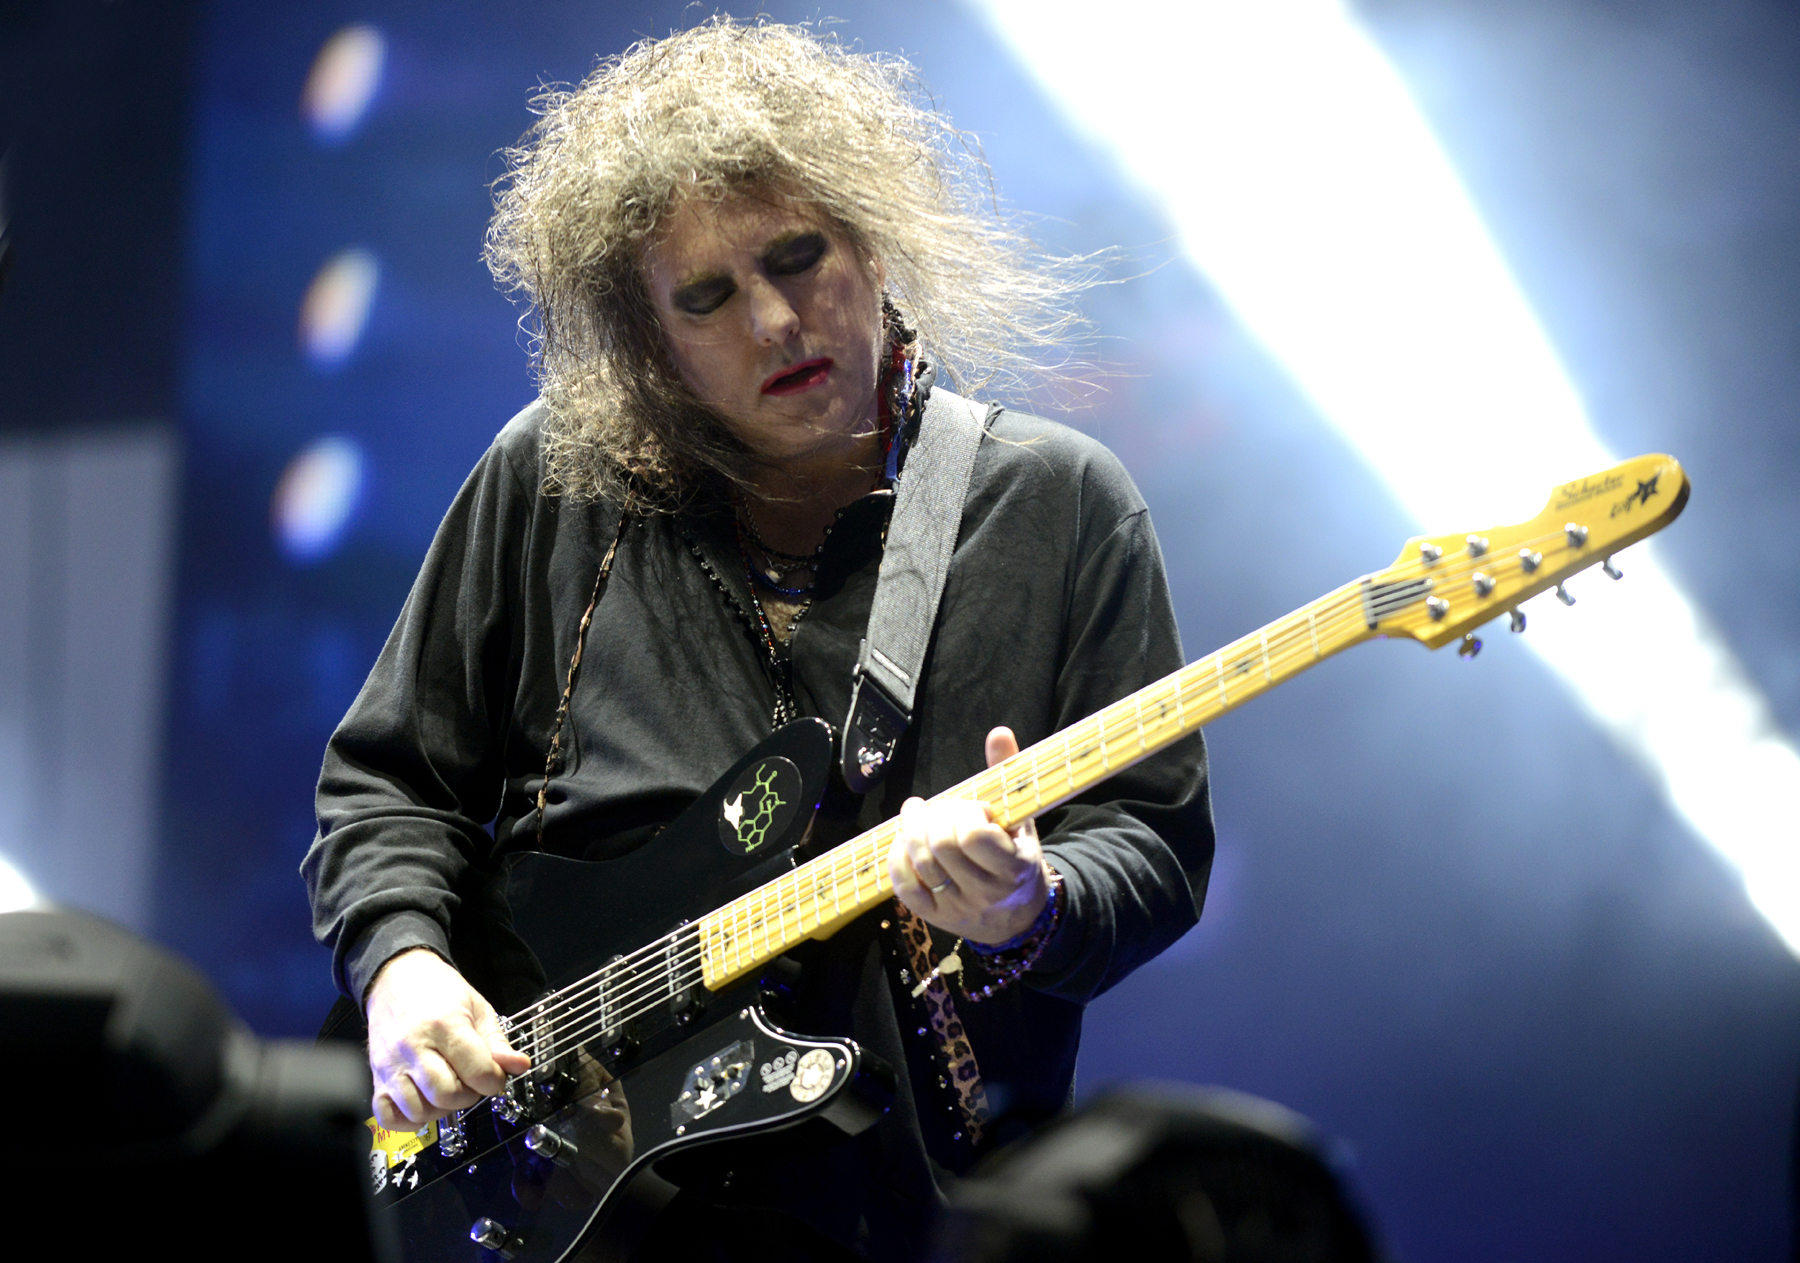 Riot Fest 2014: The Cure, Wu-Tang Clan, Weezer Set to Headline